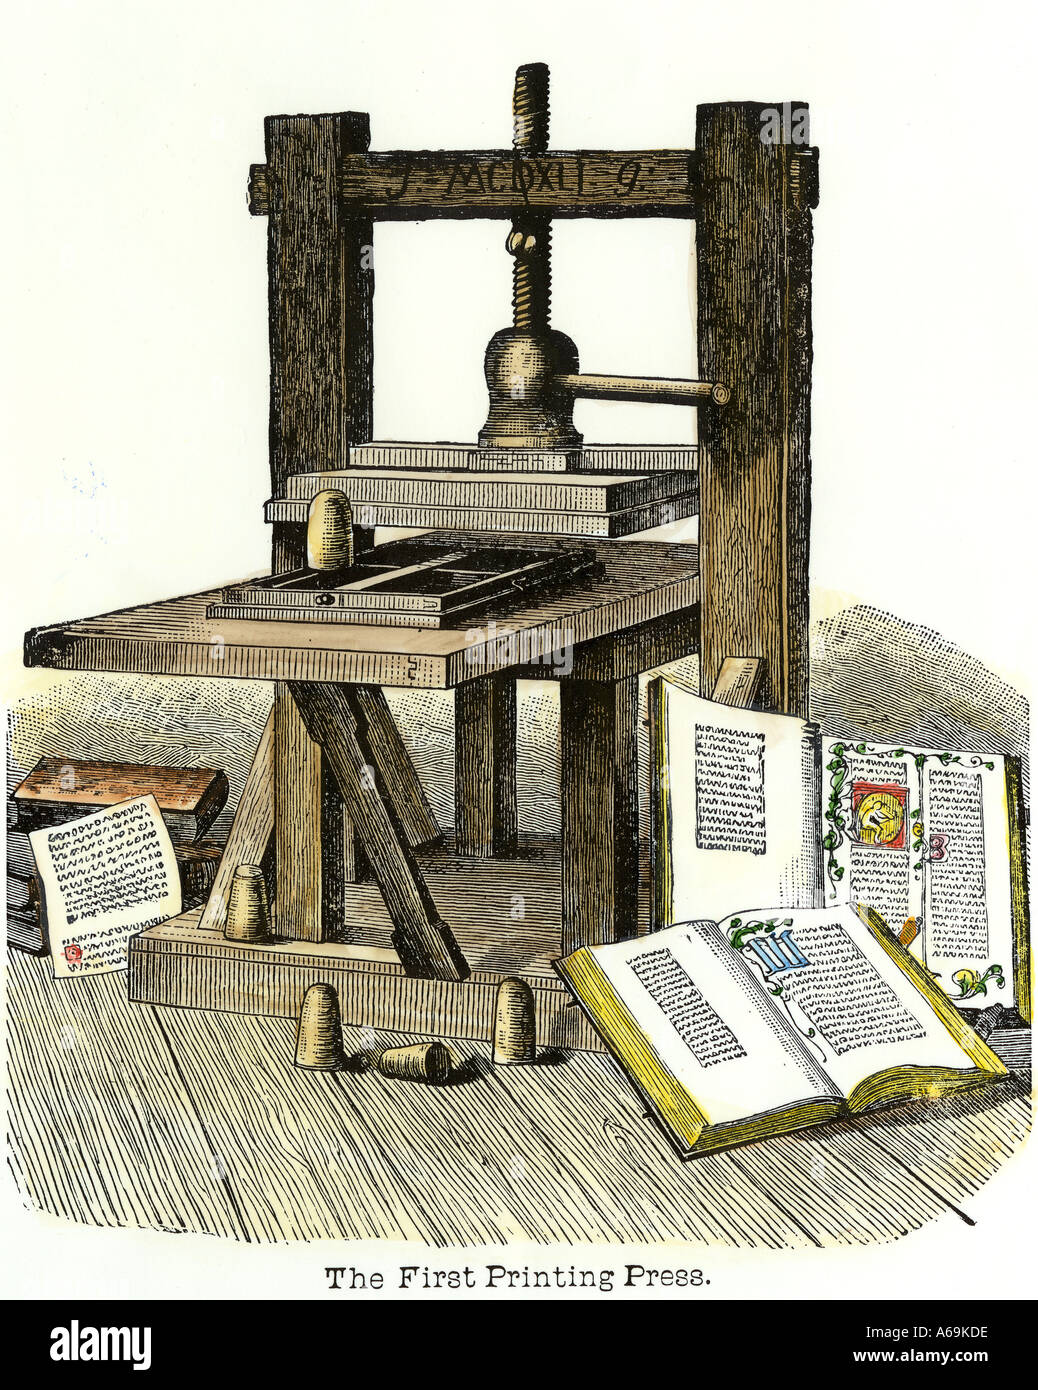 johann gutenberg s printing press mainz germany 1450s